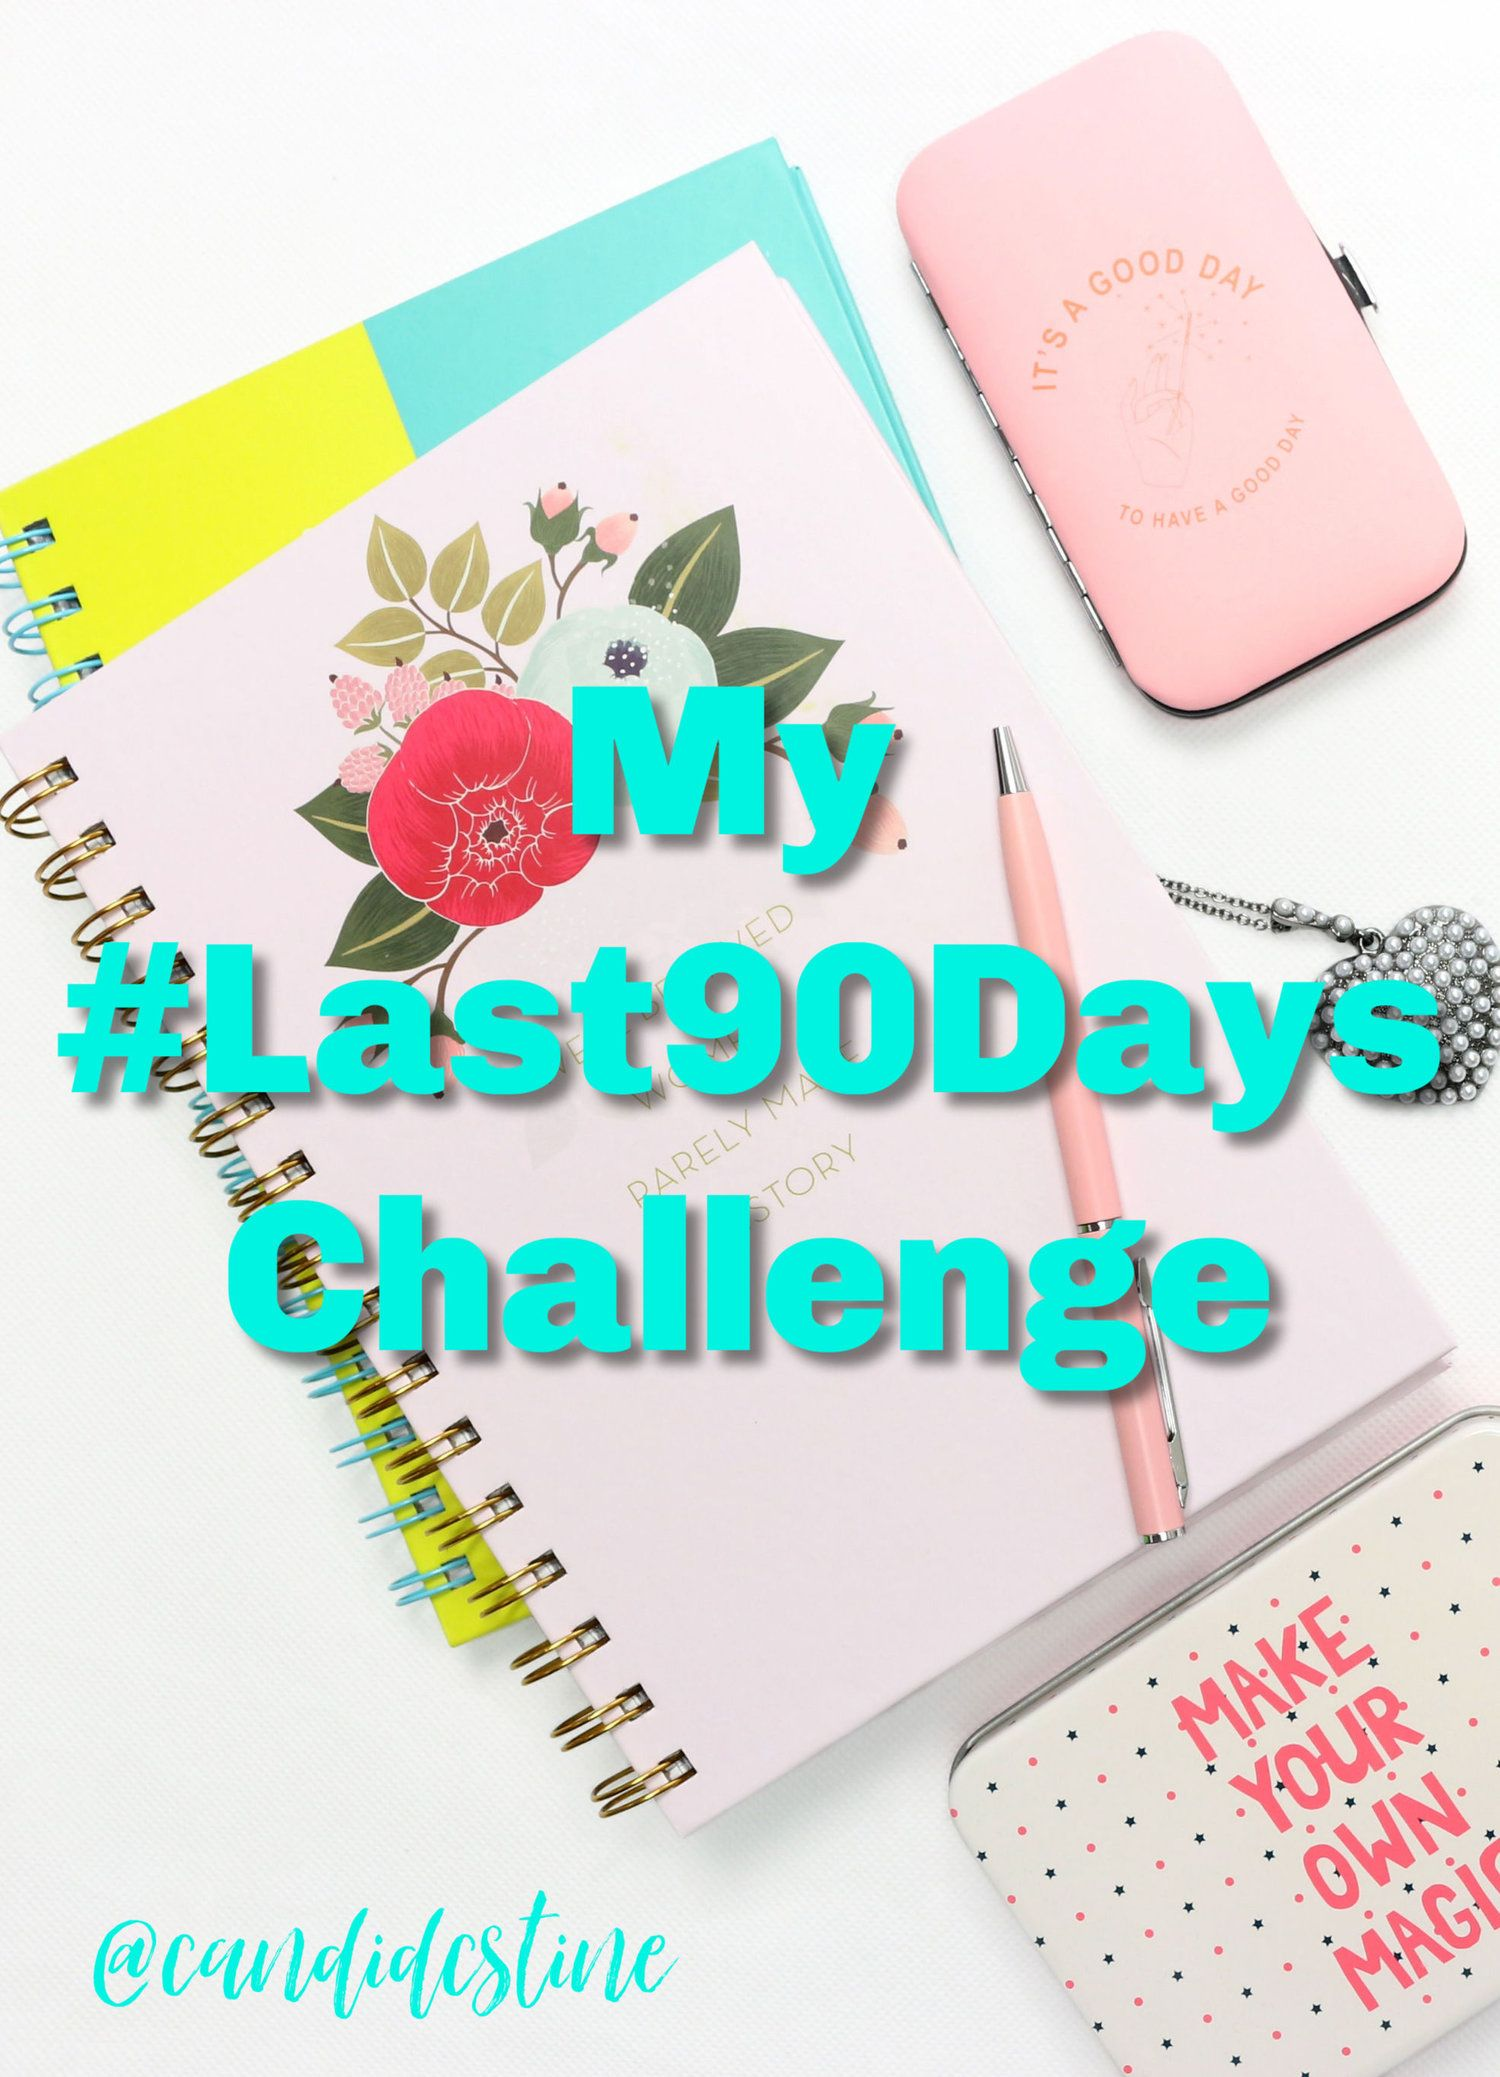 My Last90Days Challenge Challenges, 90 day challenge